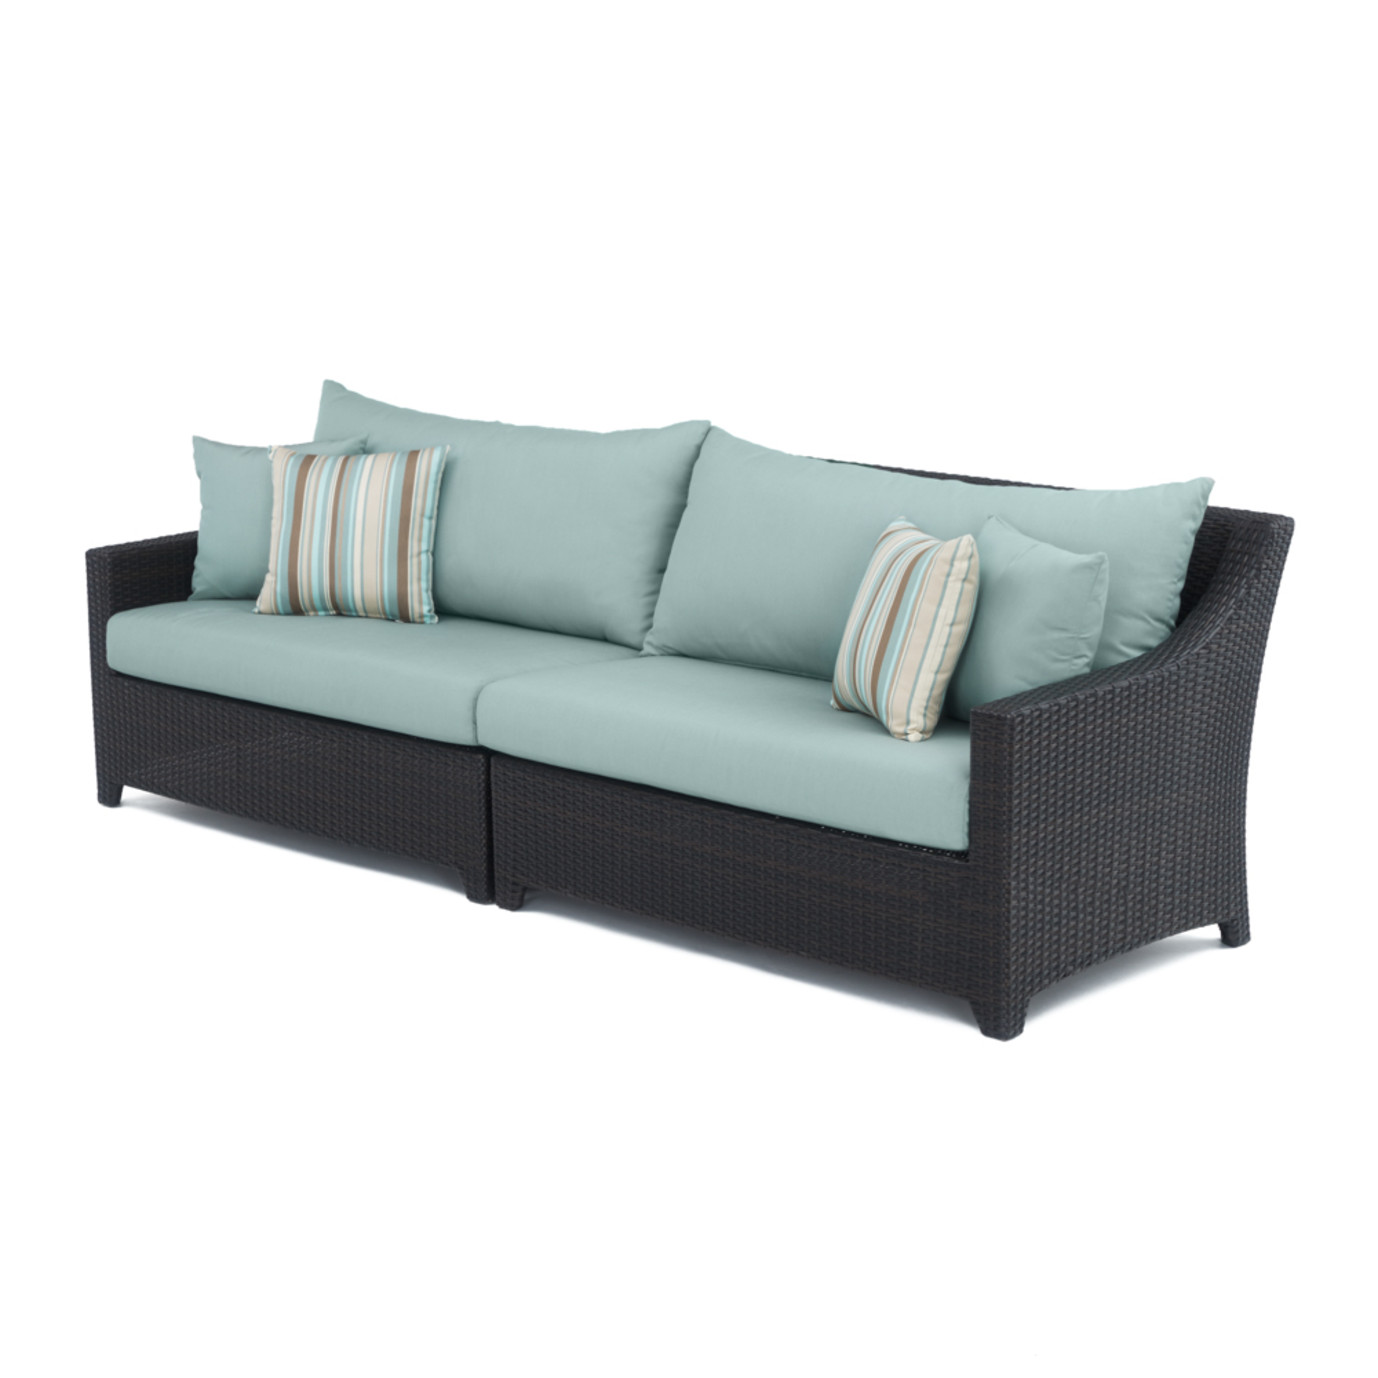 Deco™ Sofa - Bliss Blue